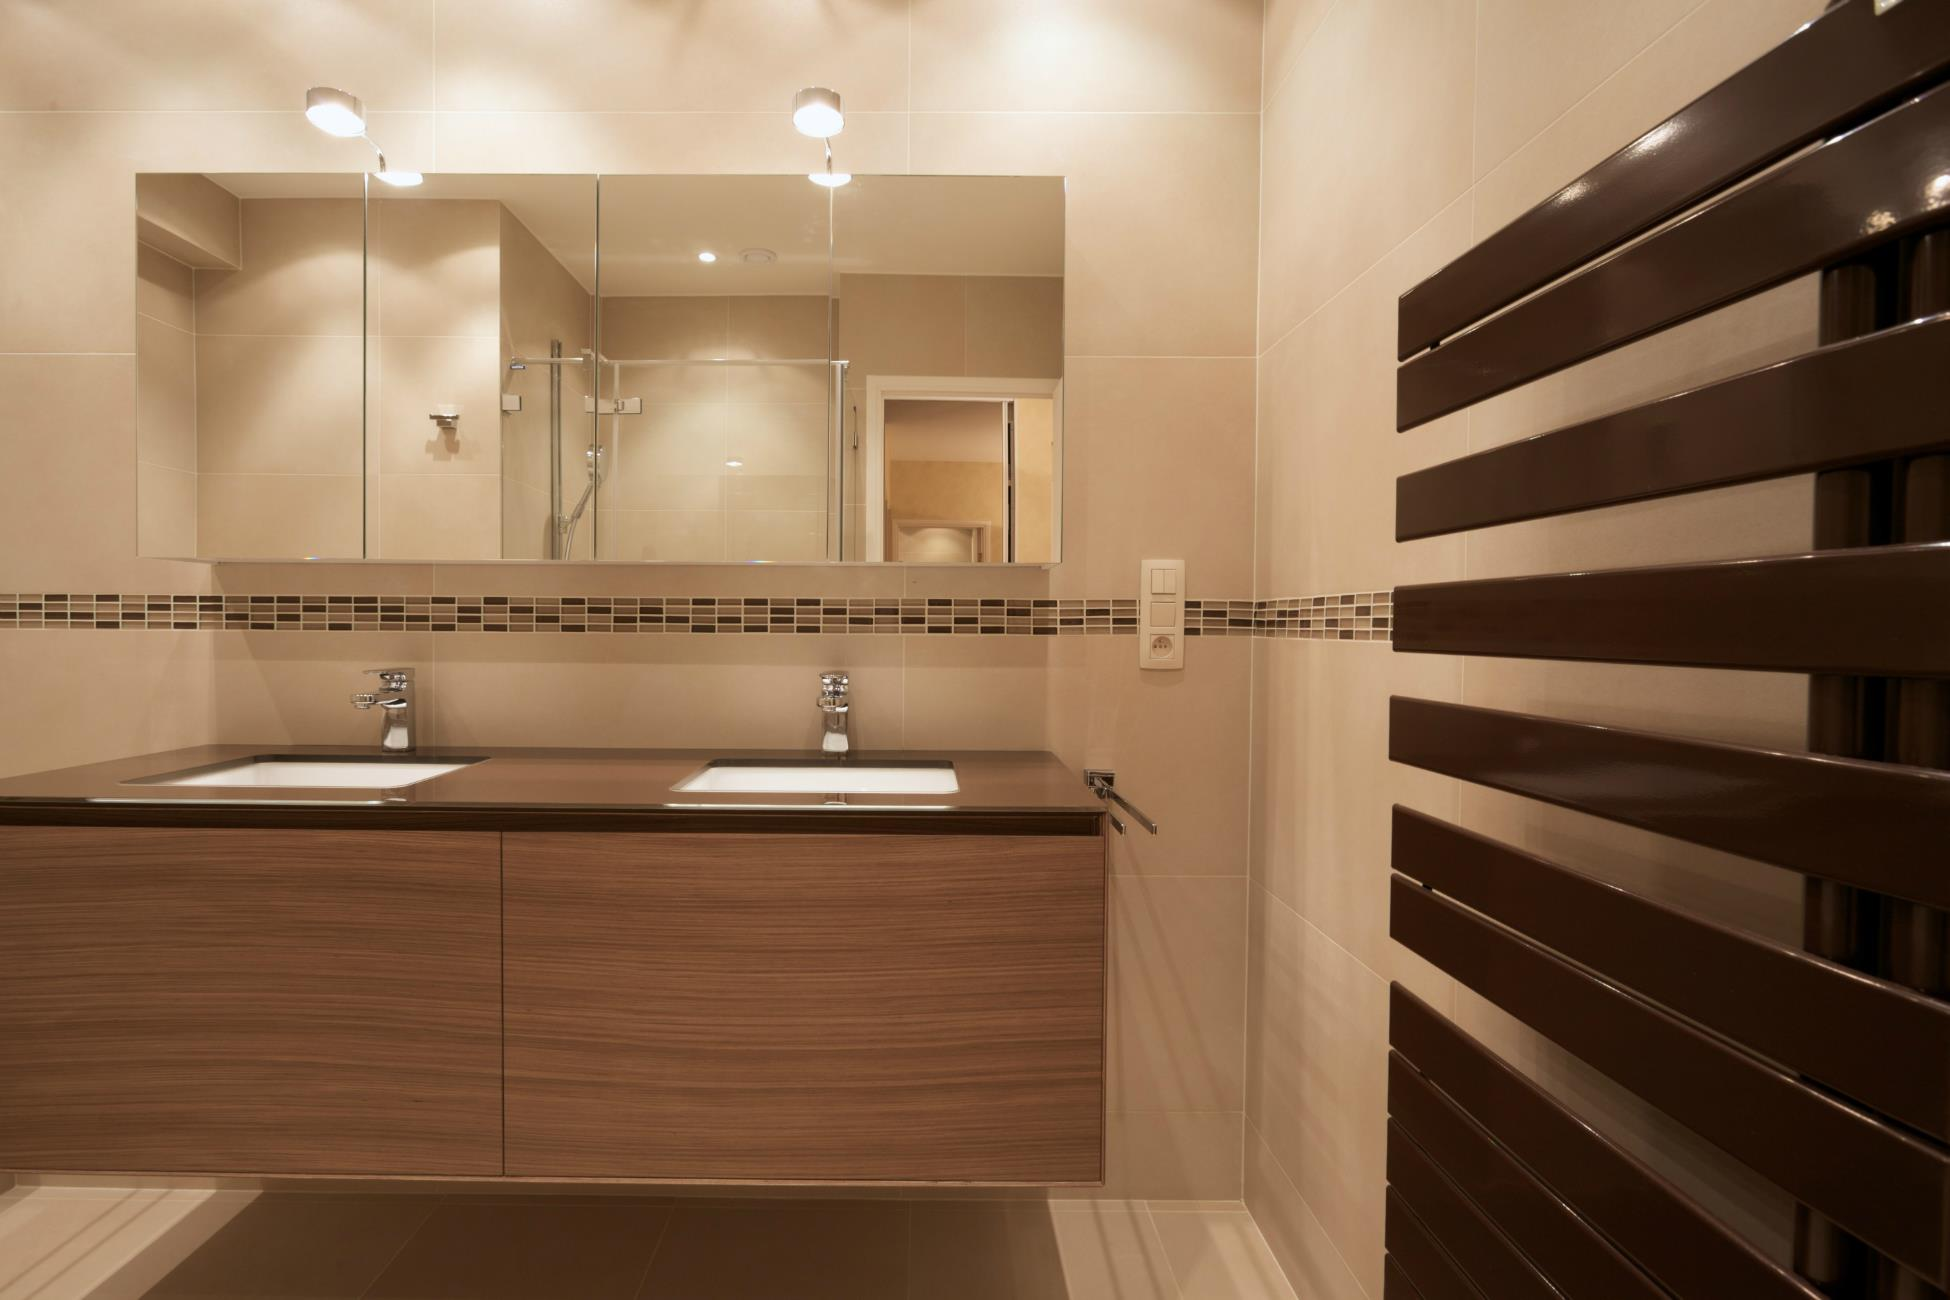 Salle de bain design r alisations renov management for Photo salle de bain design